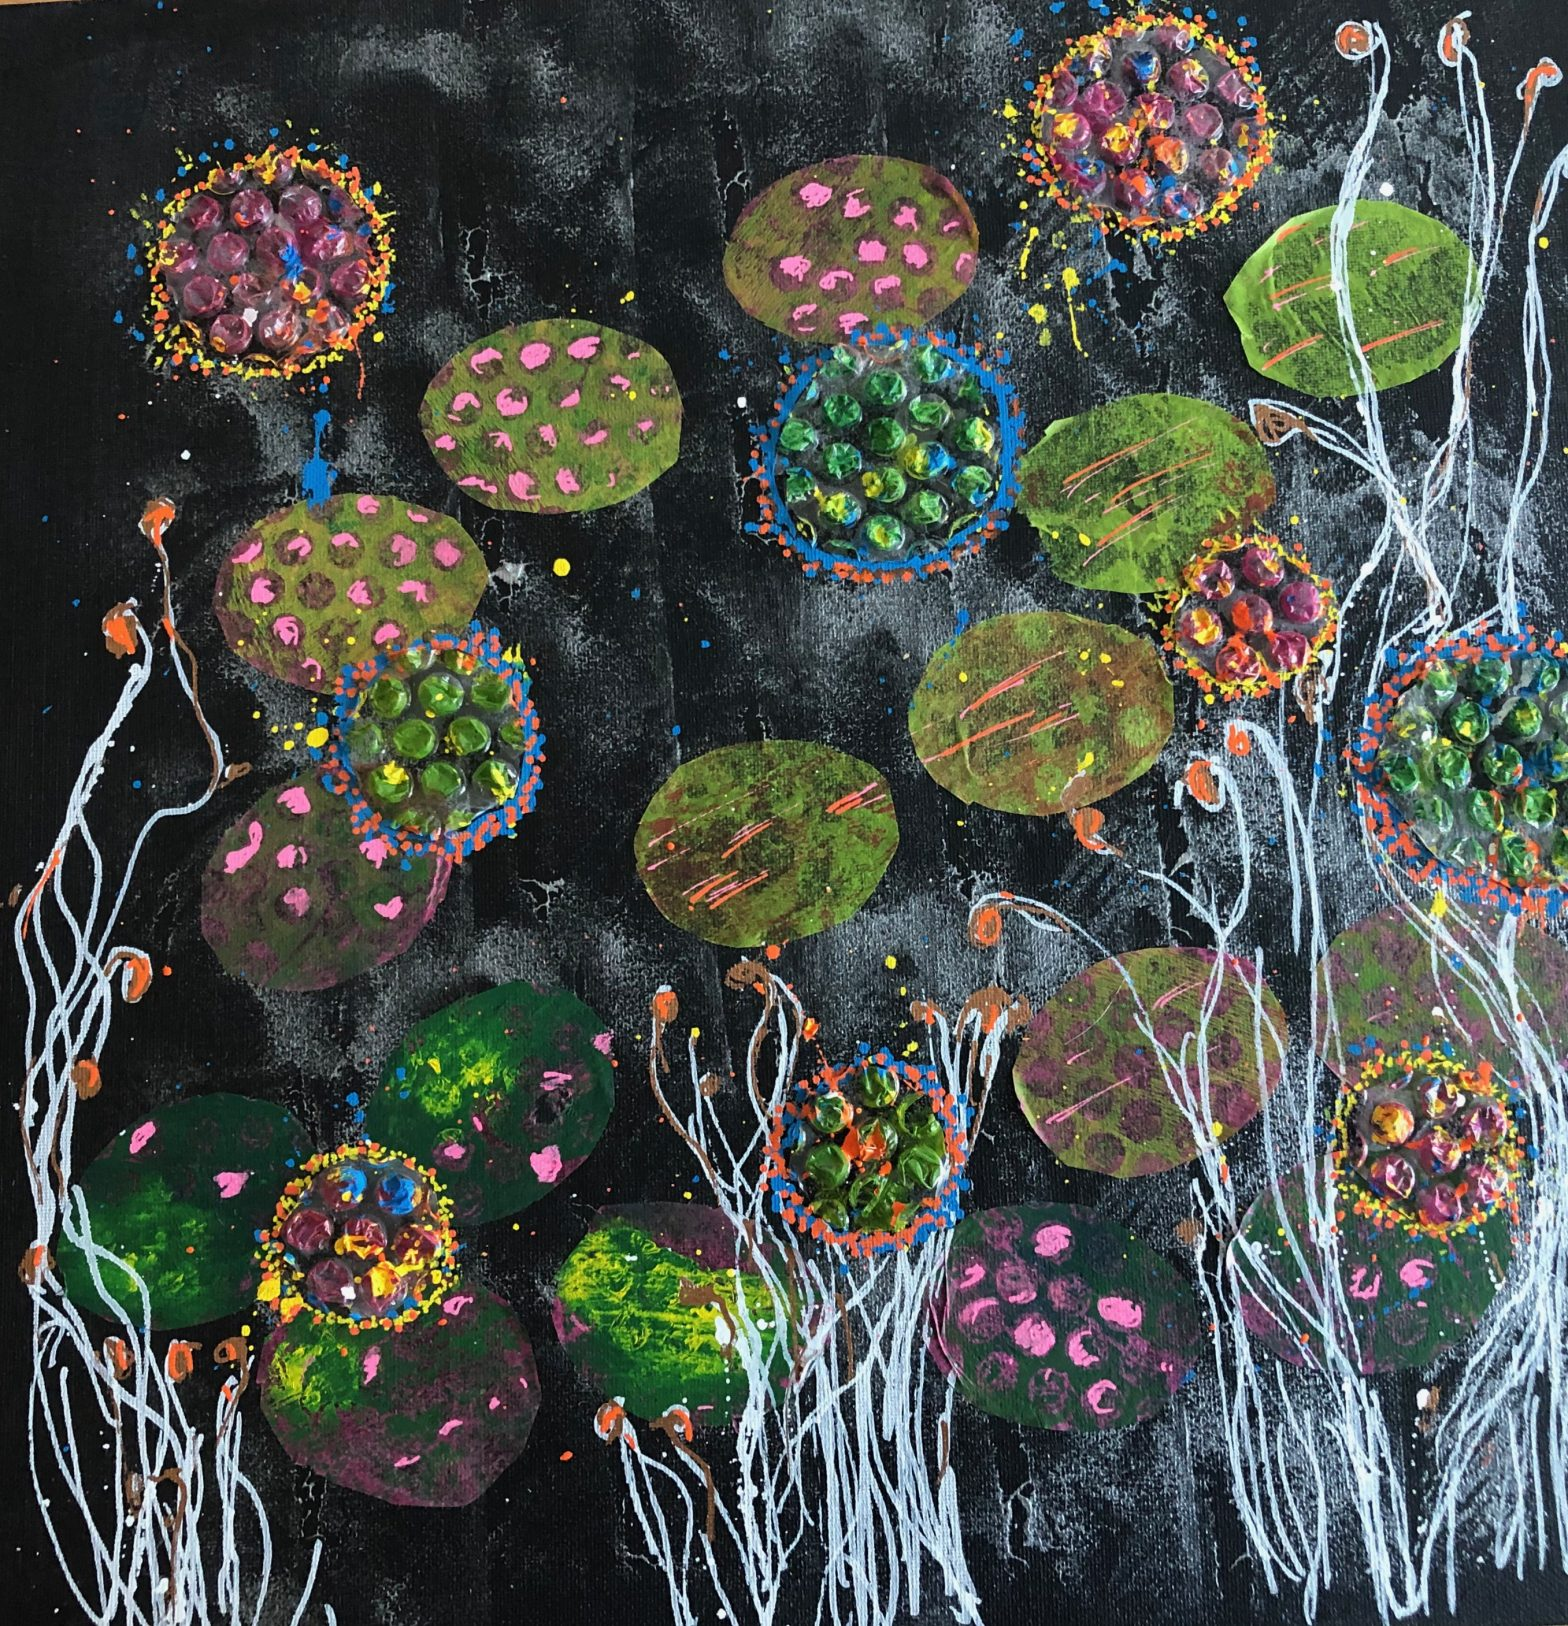 Abstracted collage of water lilies and covid 19 virus